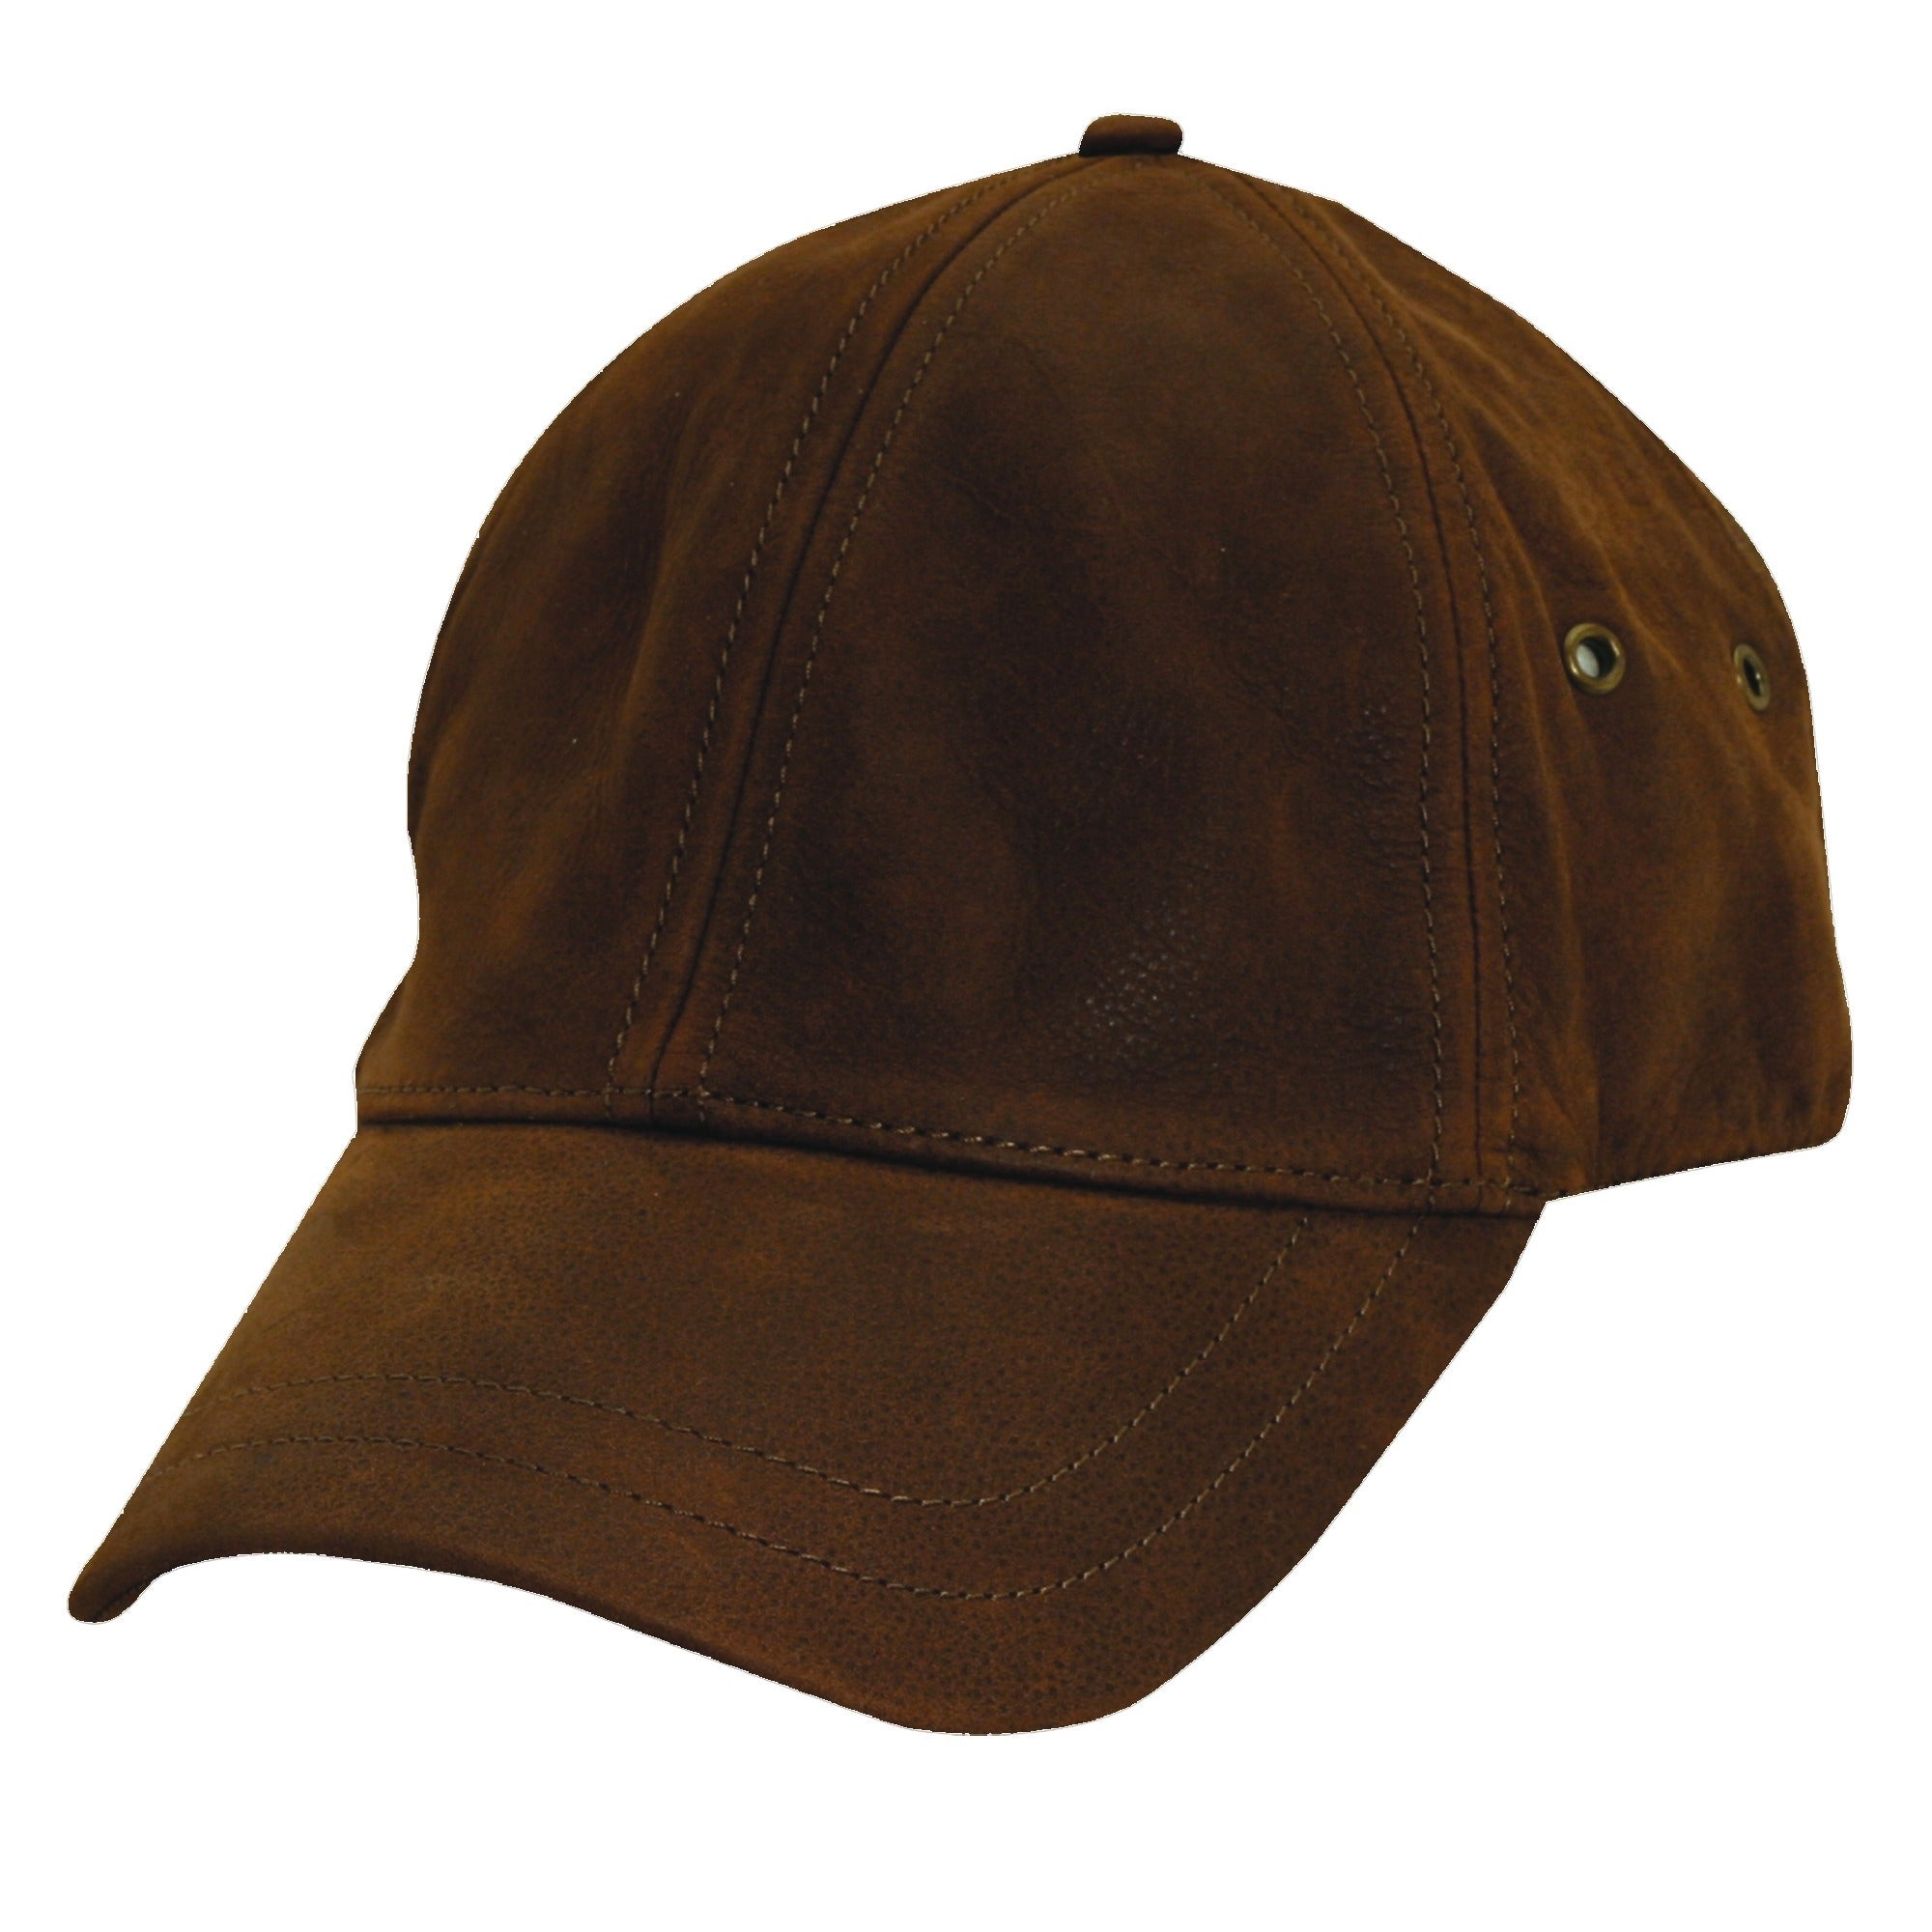 c37a497687c Shop Stetson Men s Antiqued Leather Oily Timber Baseball Cap - Free ...